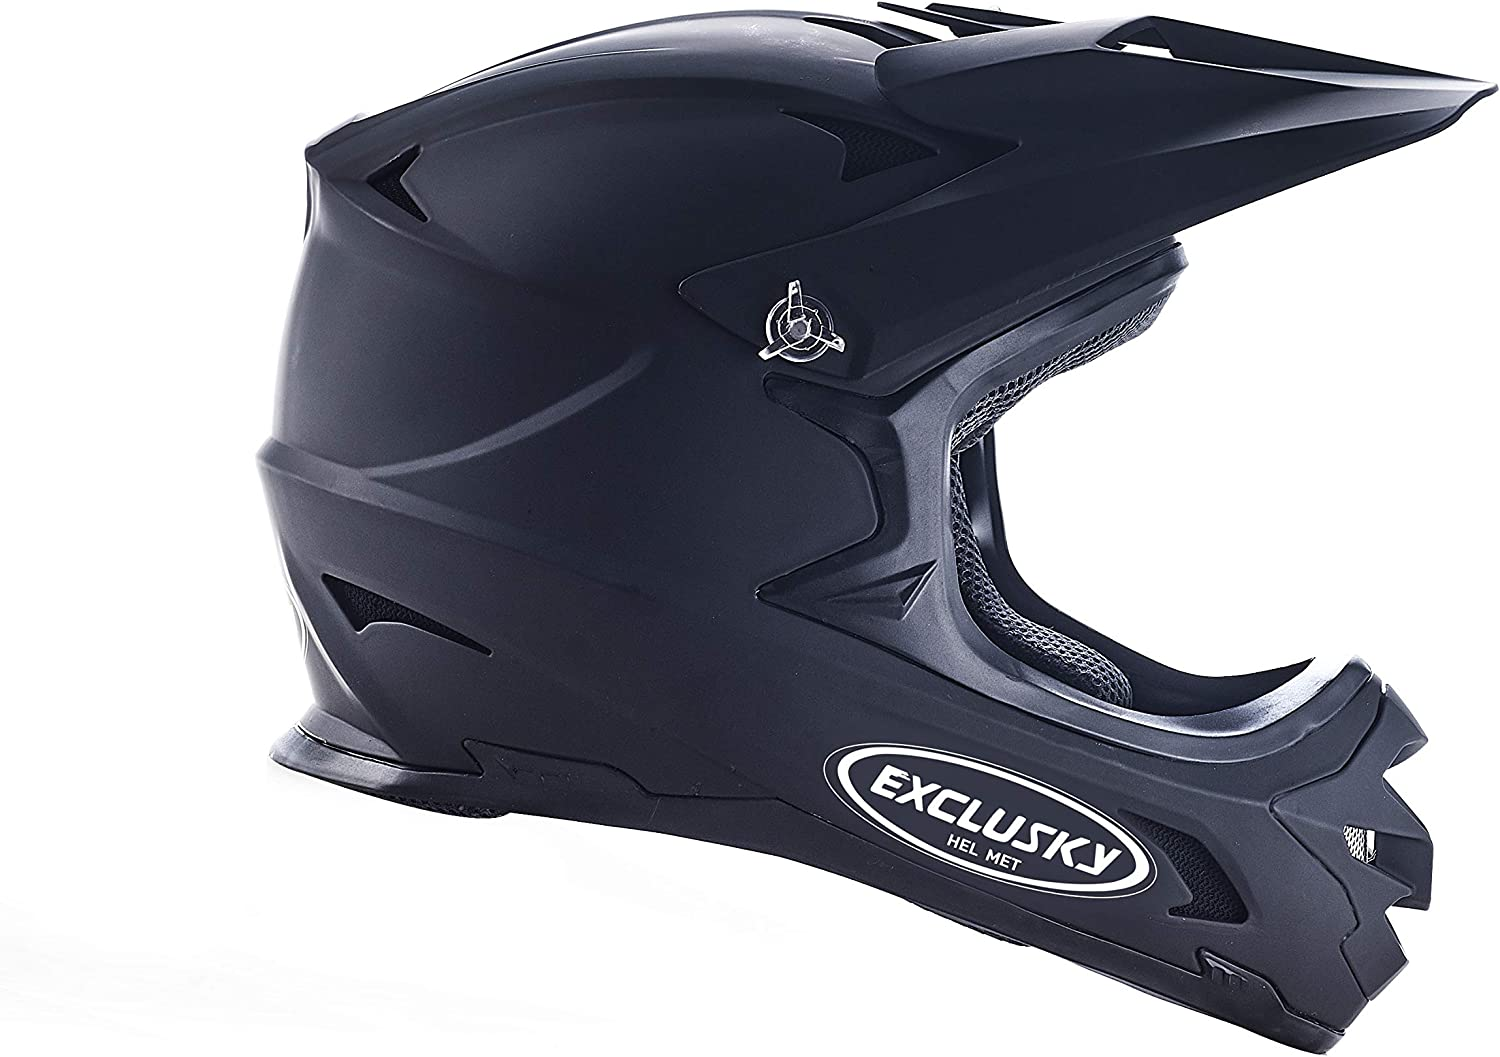 Exclusky Adult Full Face Mountain Bike Helmets